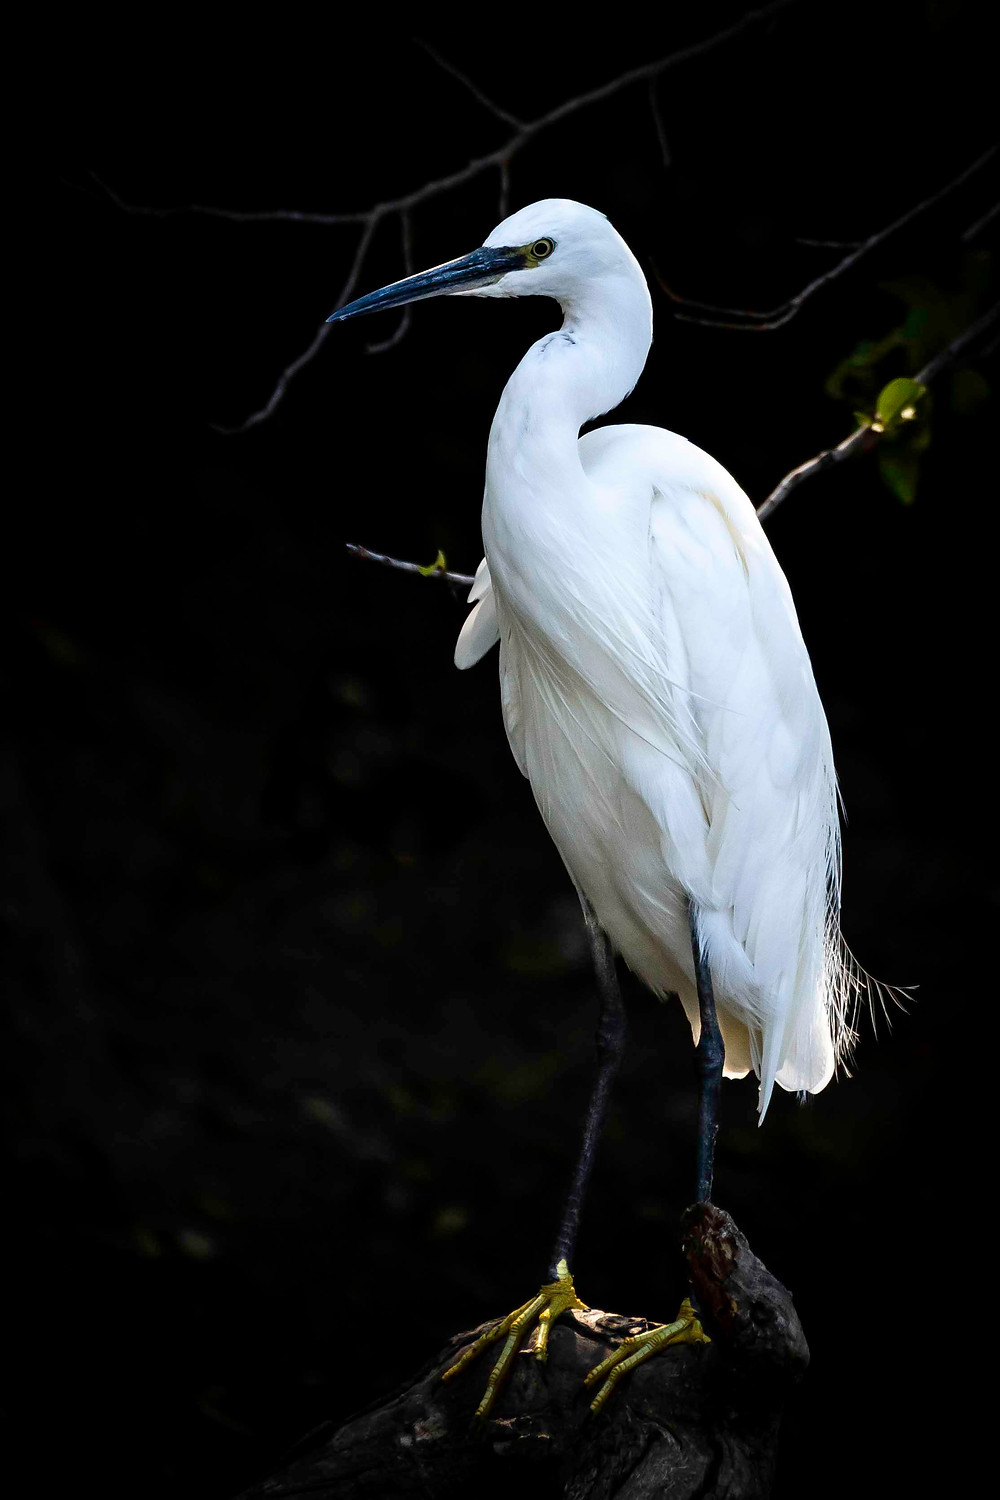 Little egret, identified by yellow feet